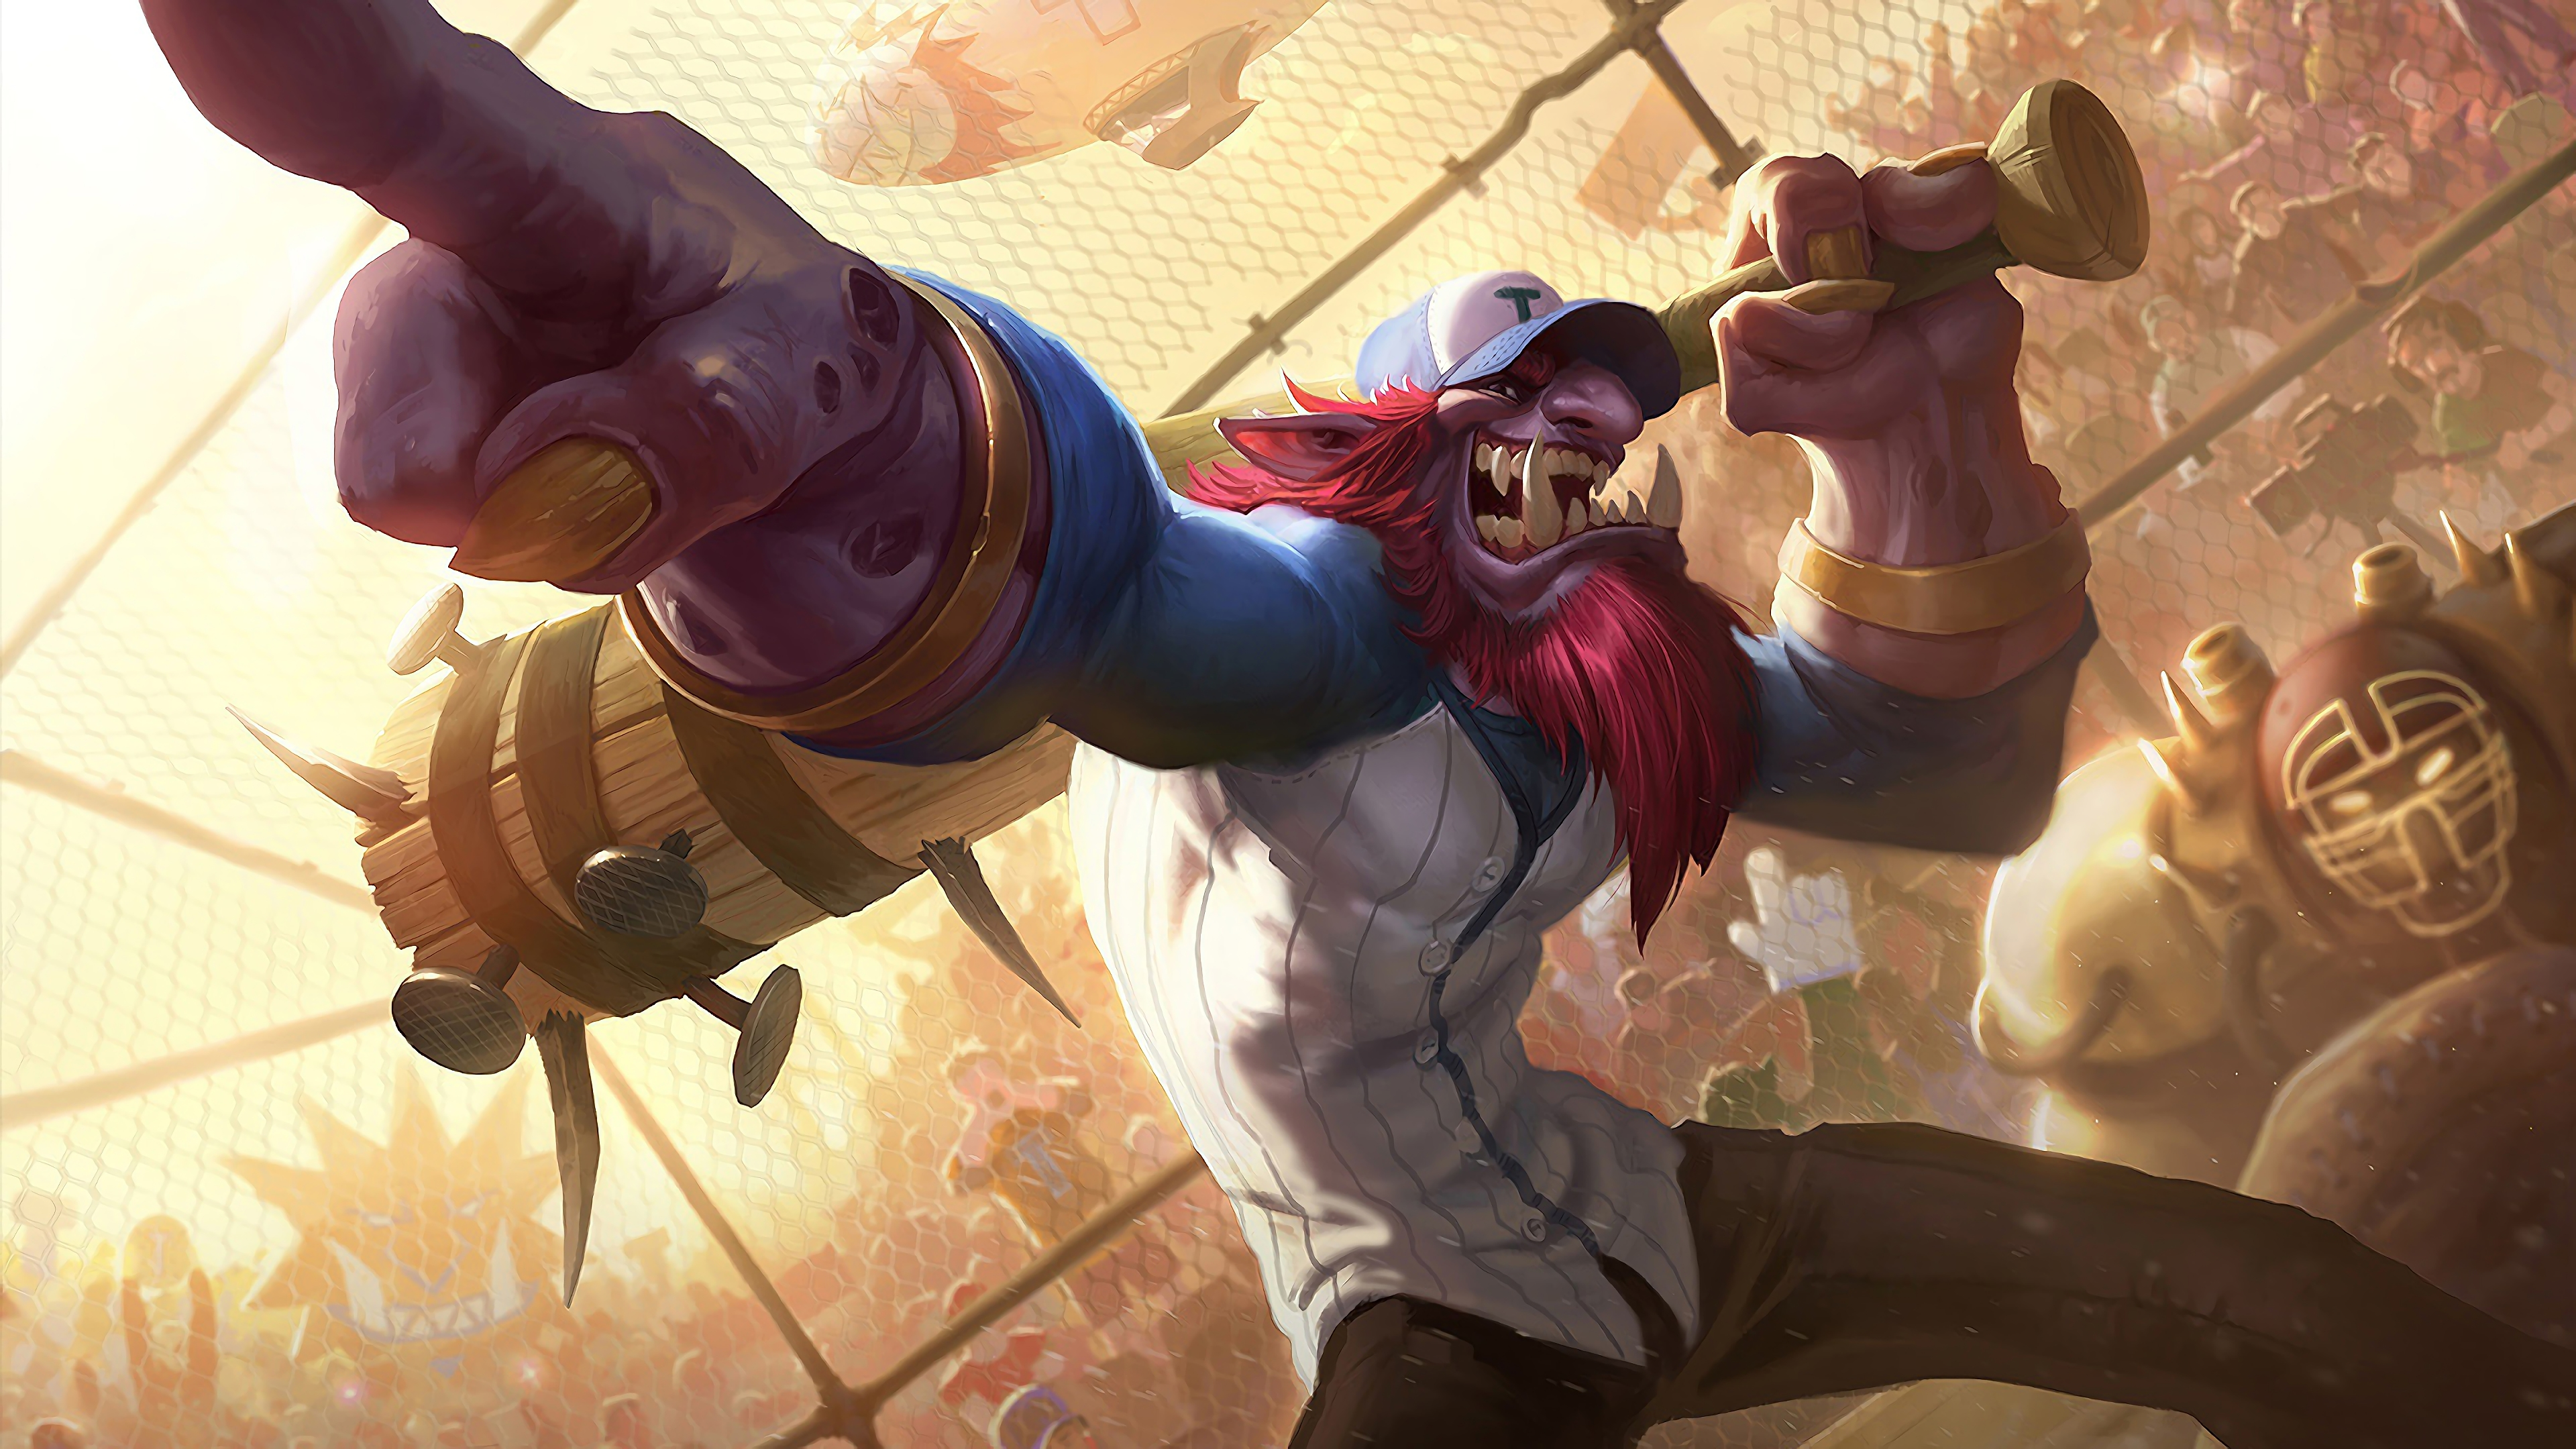 lil lugger trundle lol splash art league of legends 1574098182 - Lil Lugger Trundle LoL Splash Art League of Legends - Trundle, league of legends